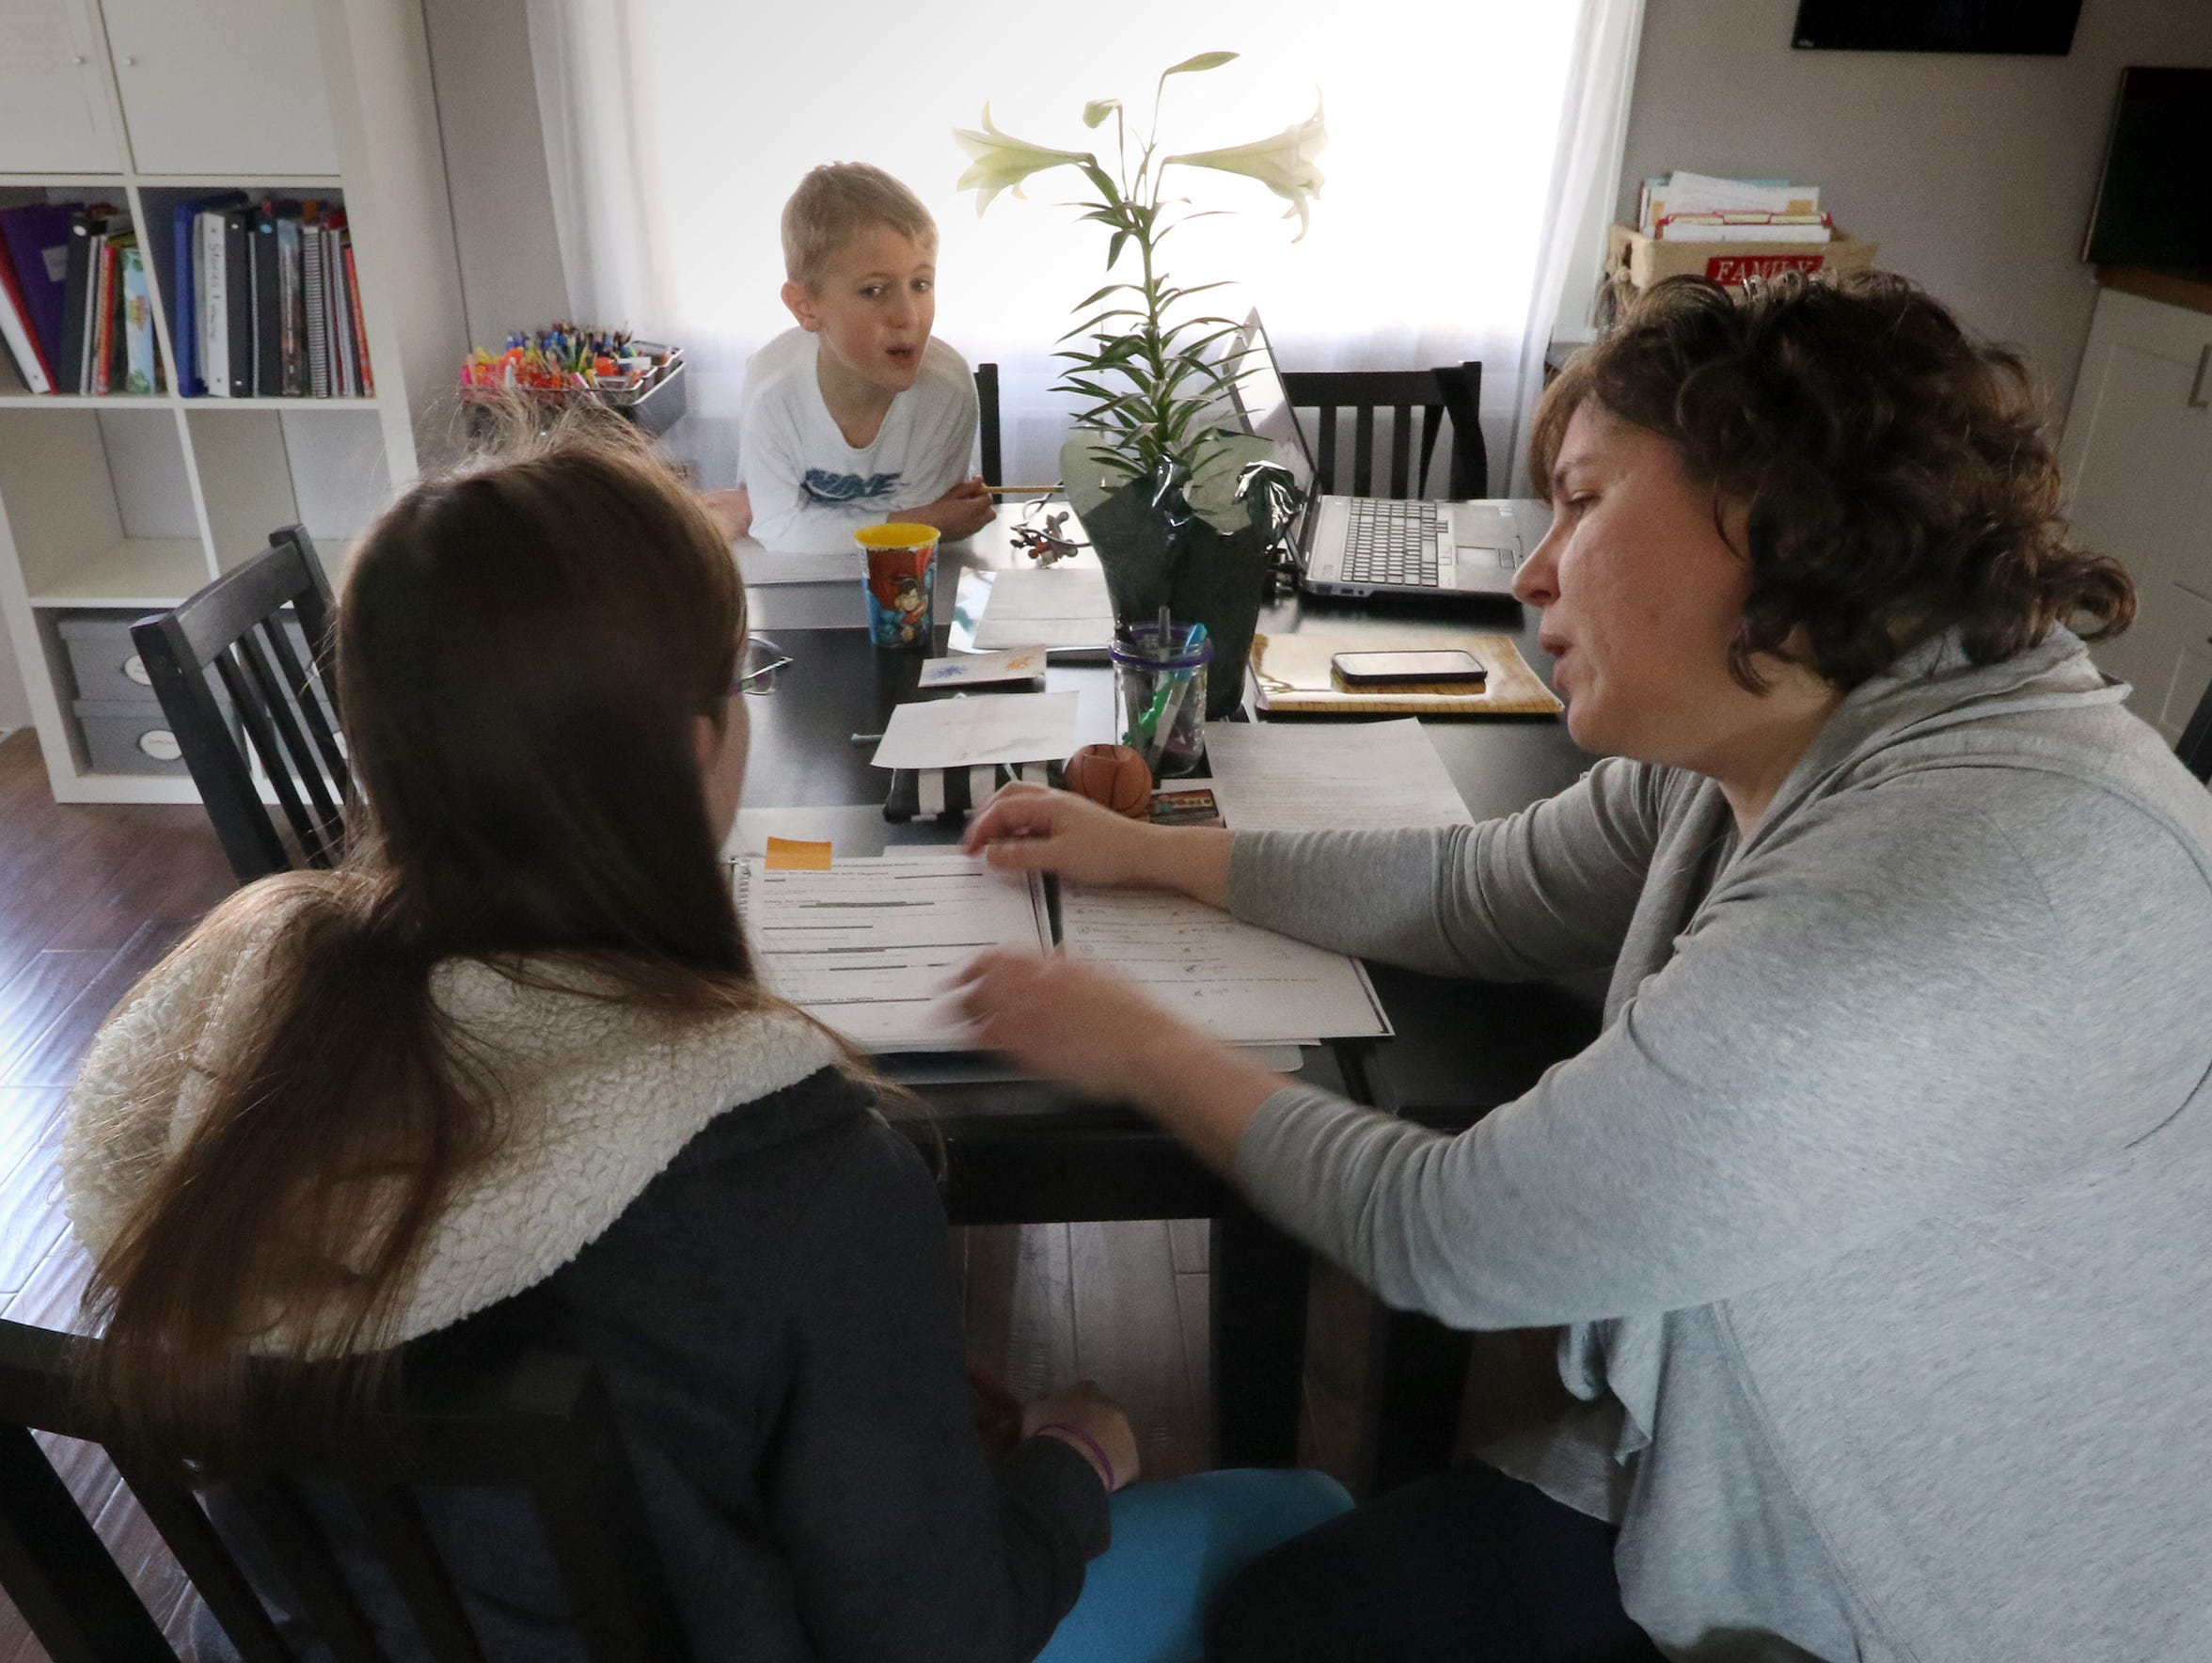 Colleen Boehm and her children Ellie, 12, and Nick, 9, gather at the kitchen table to work on age-appropriate mathematics studies at their Sussex home.